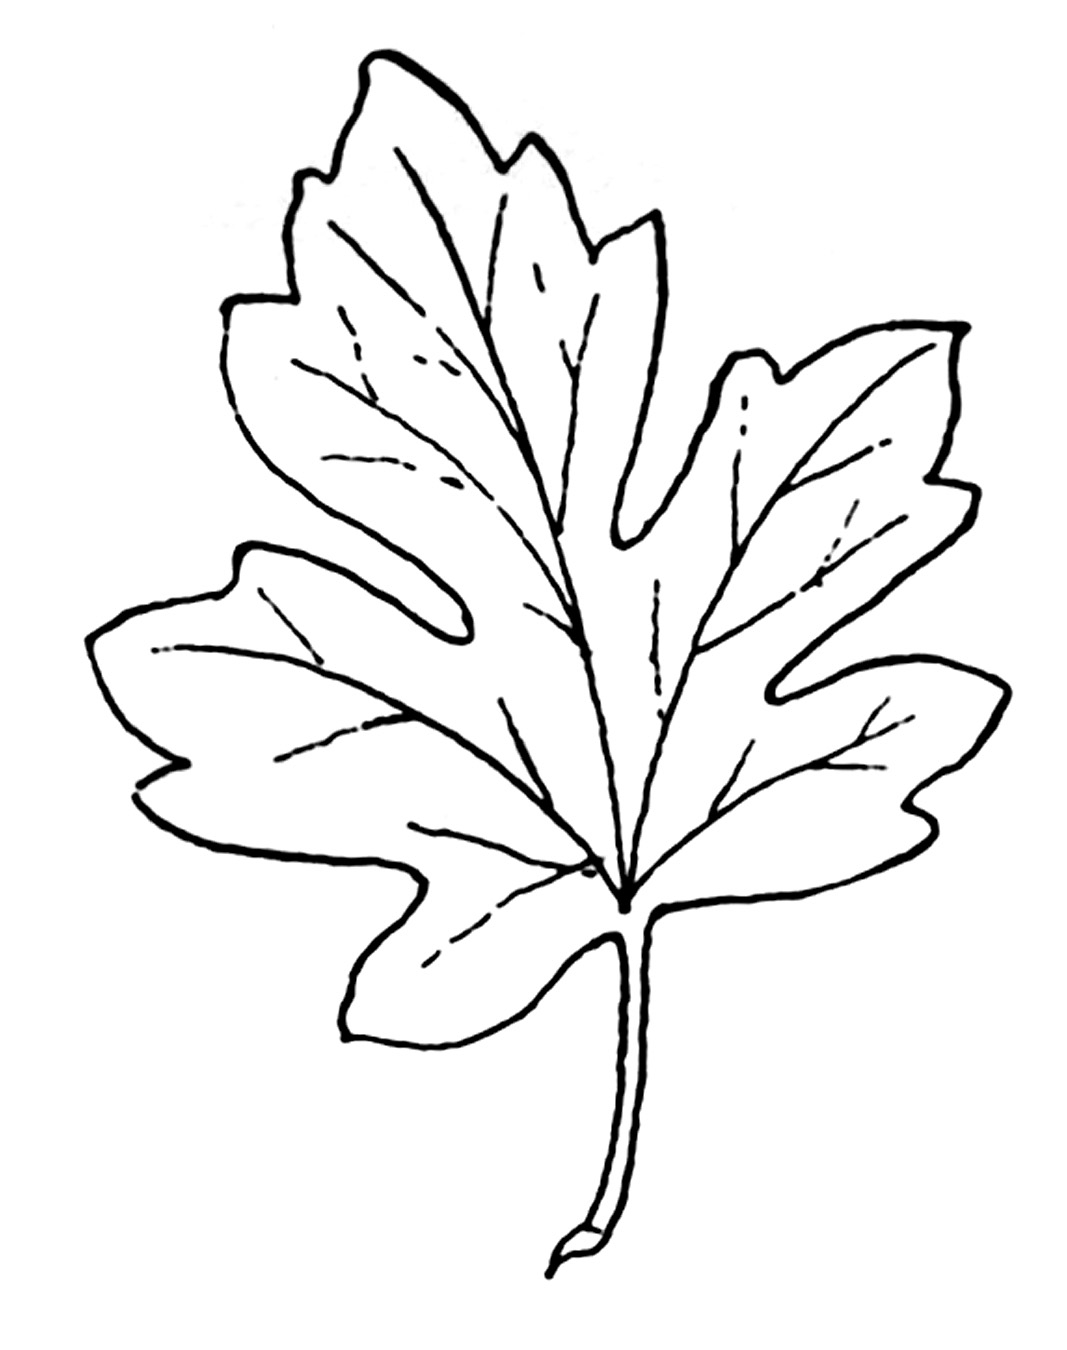 Leaf  black and white september leaves clipart black and white collection